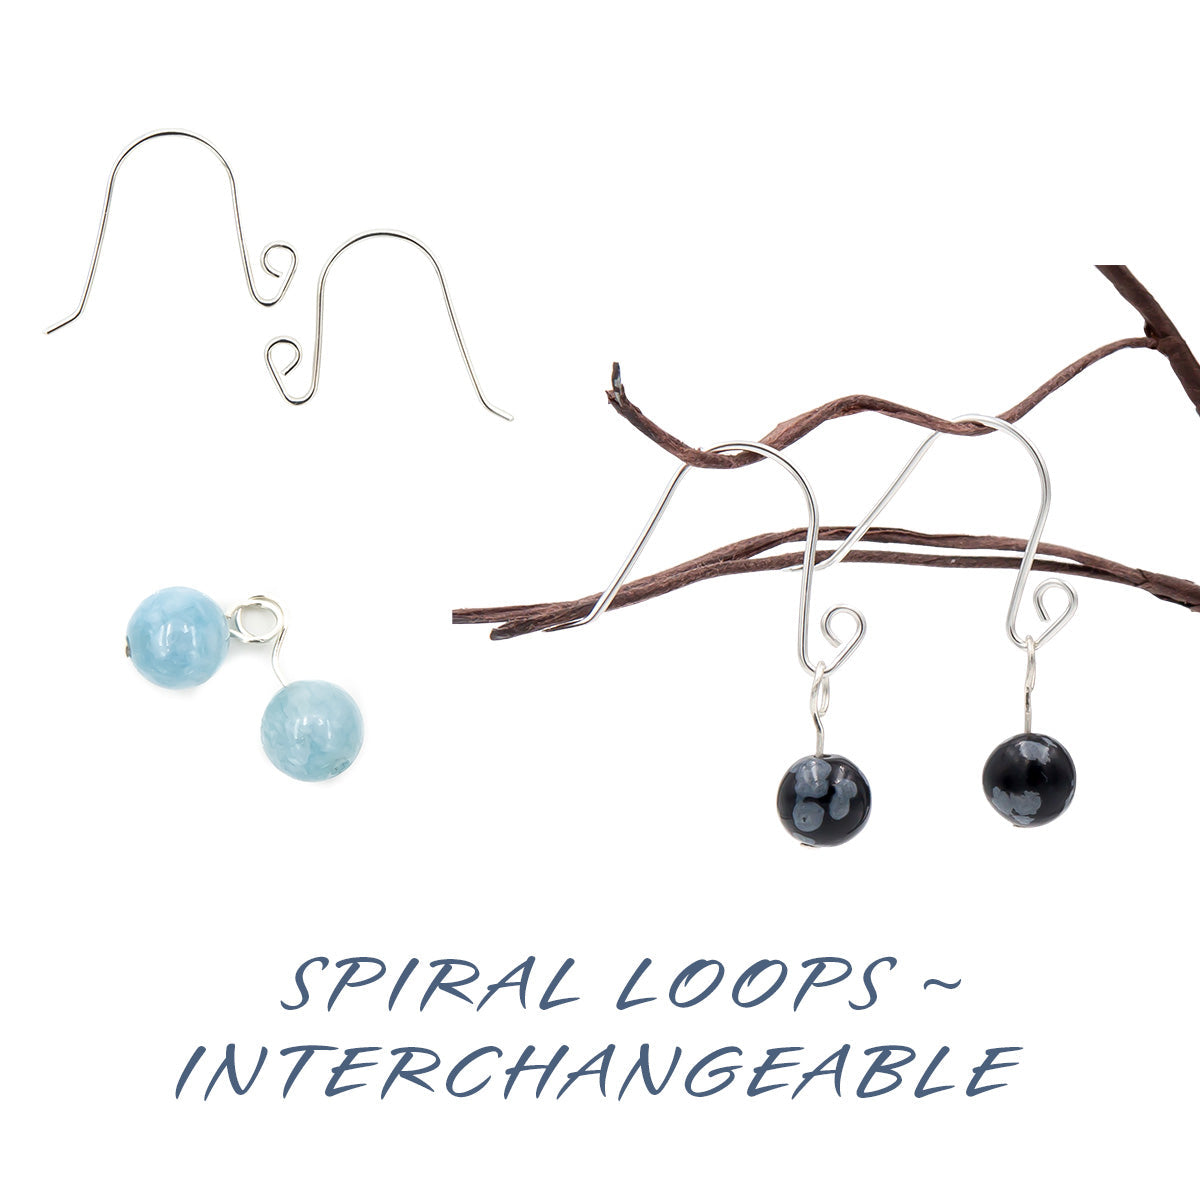 Handmade Sterling Silver spiral loops interchangeable earrings